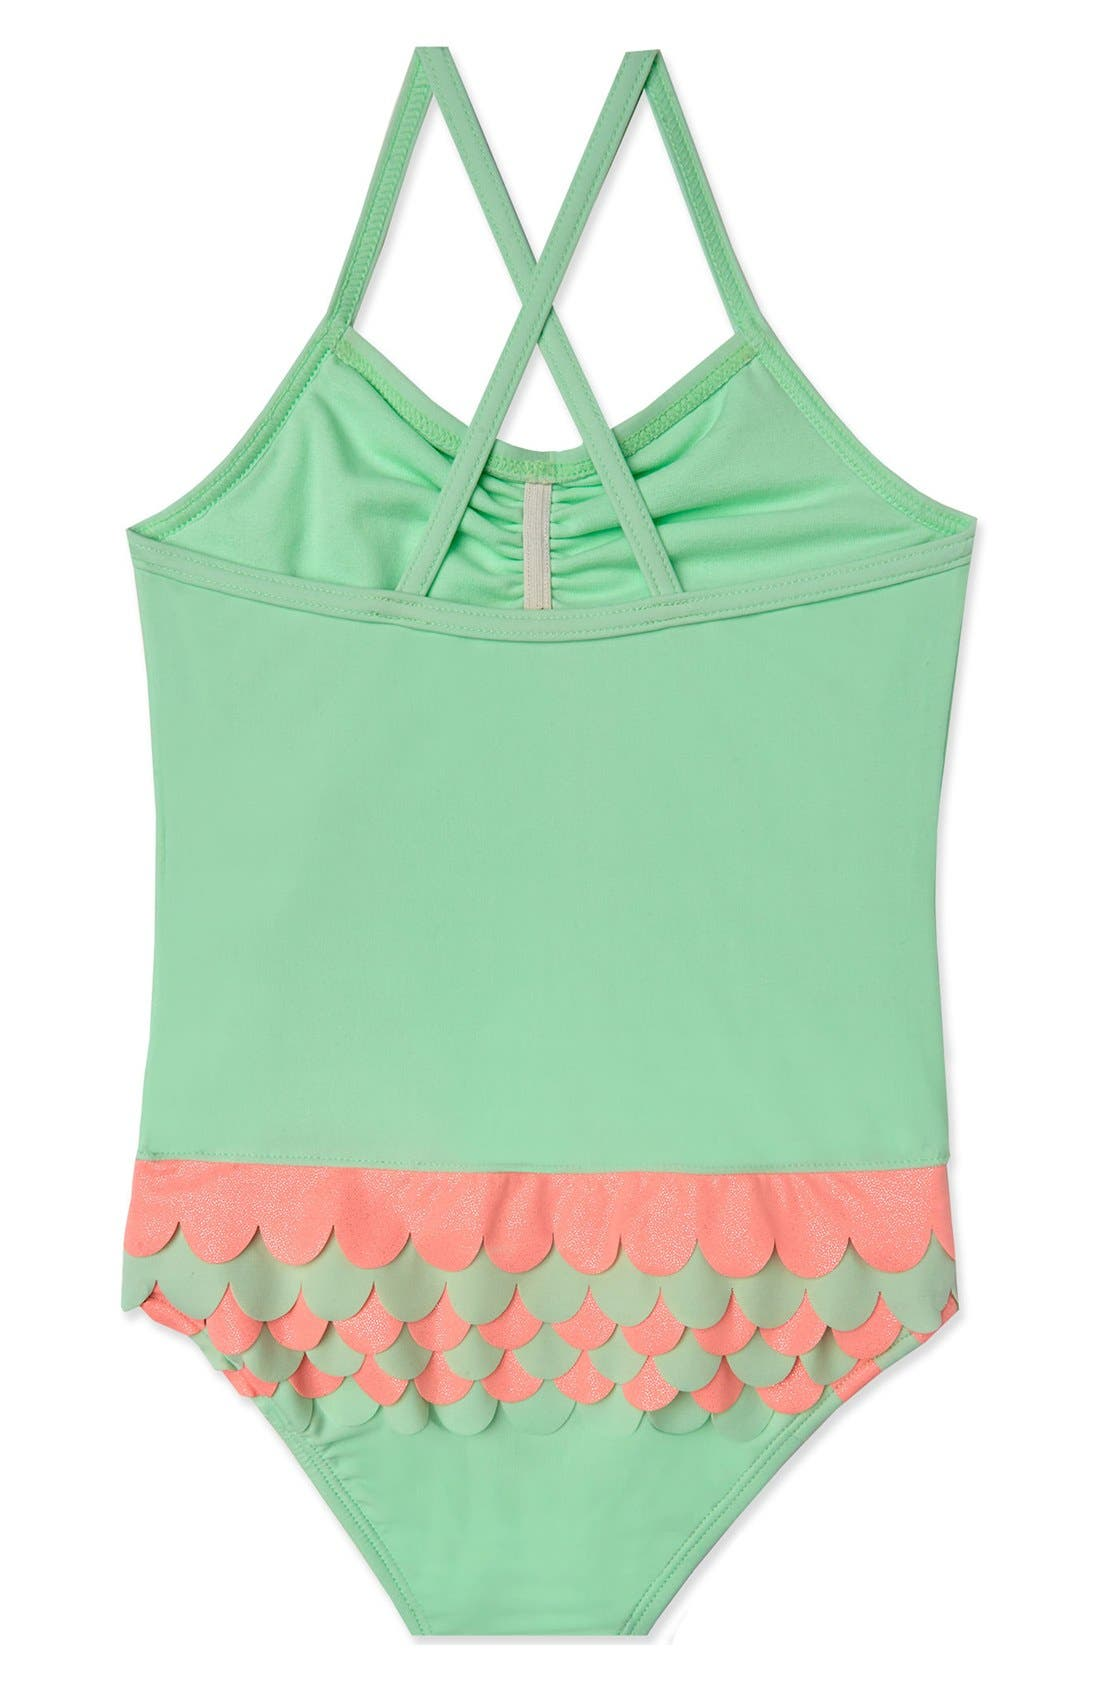 'Mermaid Scallops' One-Piece Swimsuit,                             Alternate thumbnail 2, color,                             Mint Pink